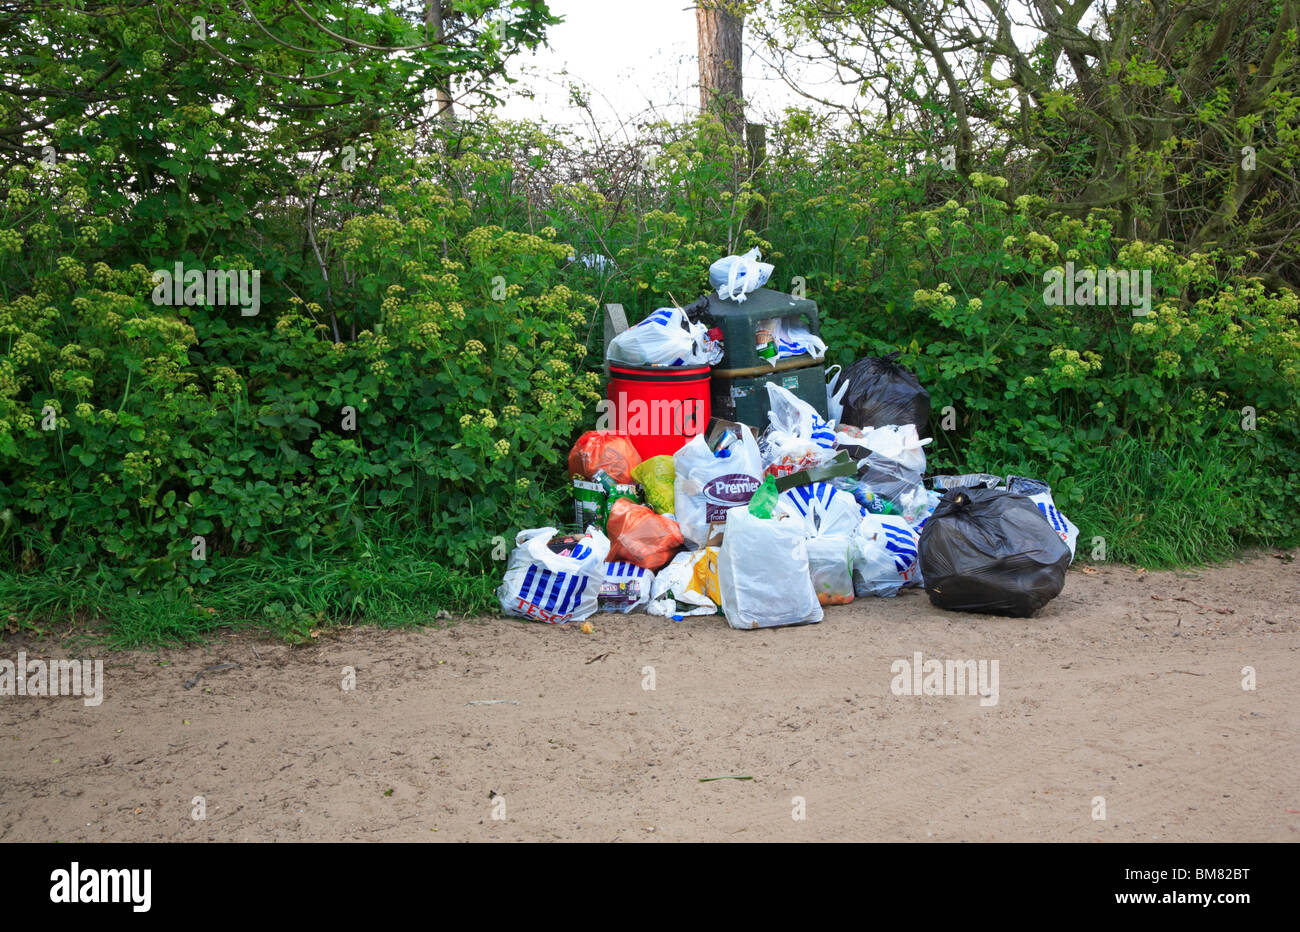 Overflowing rubbish bins in access to beach at Waxham, Norfolk, England, United Kingdom. - Stock Image